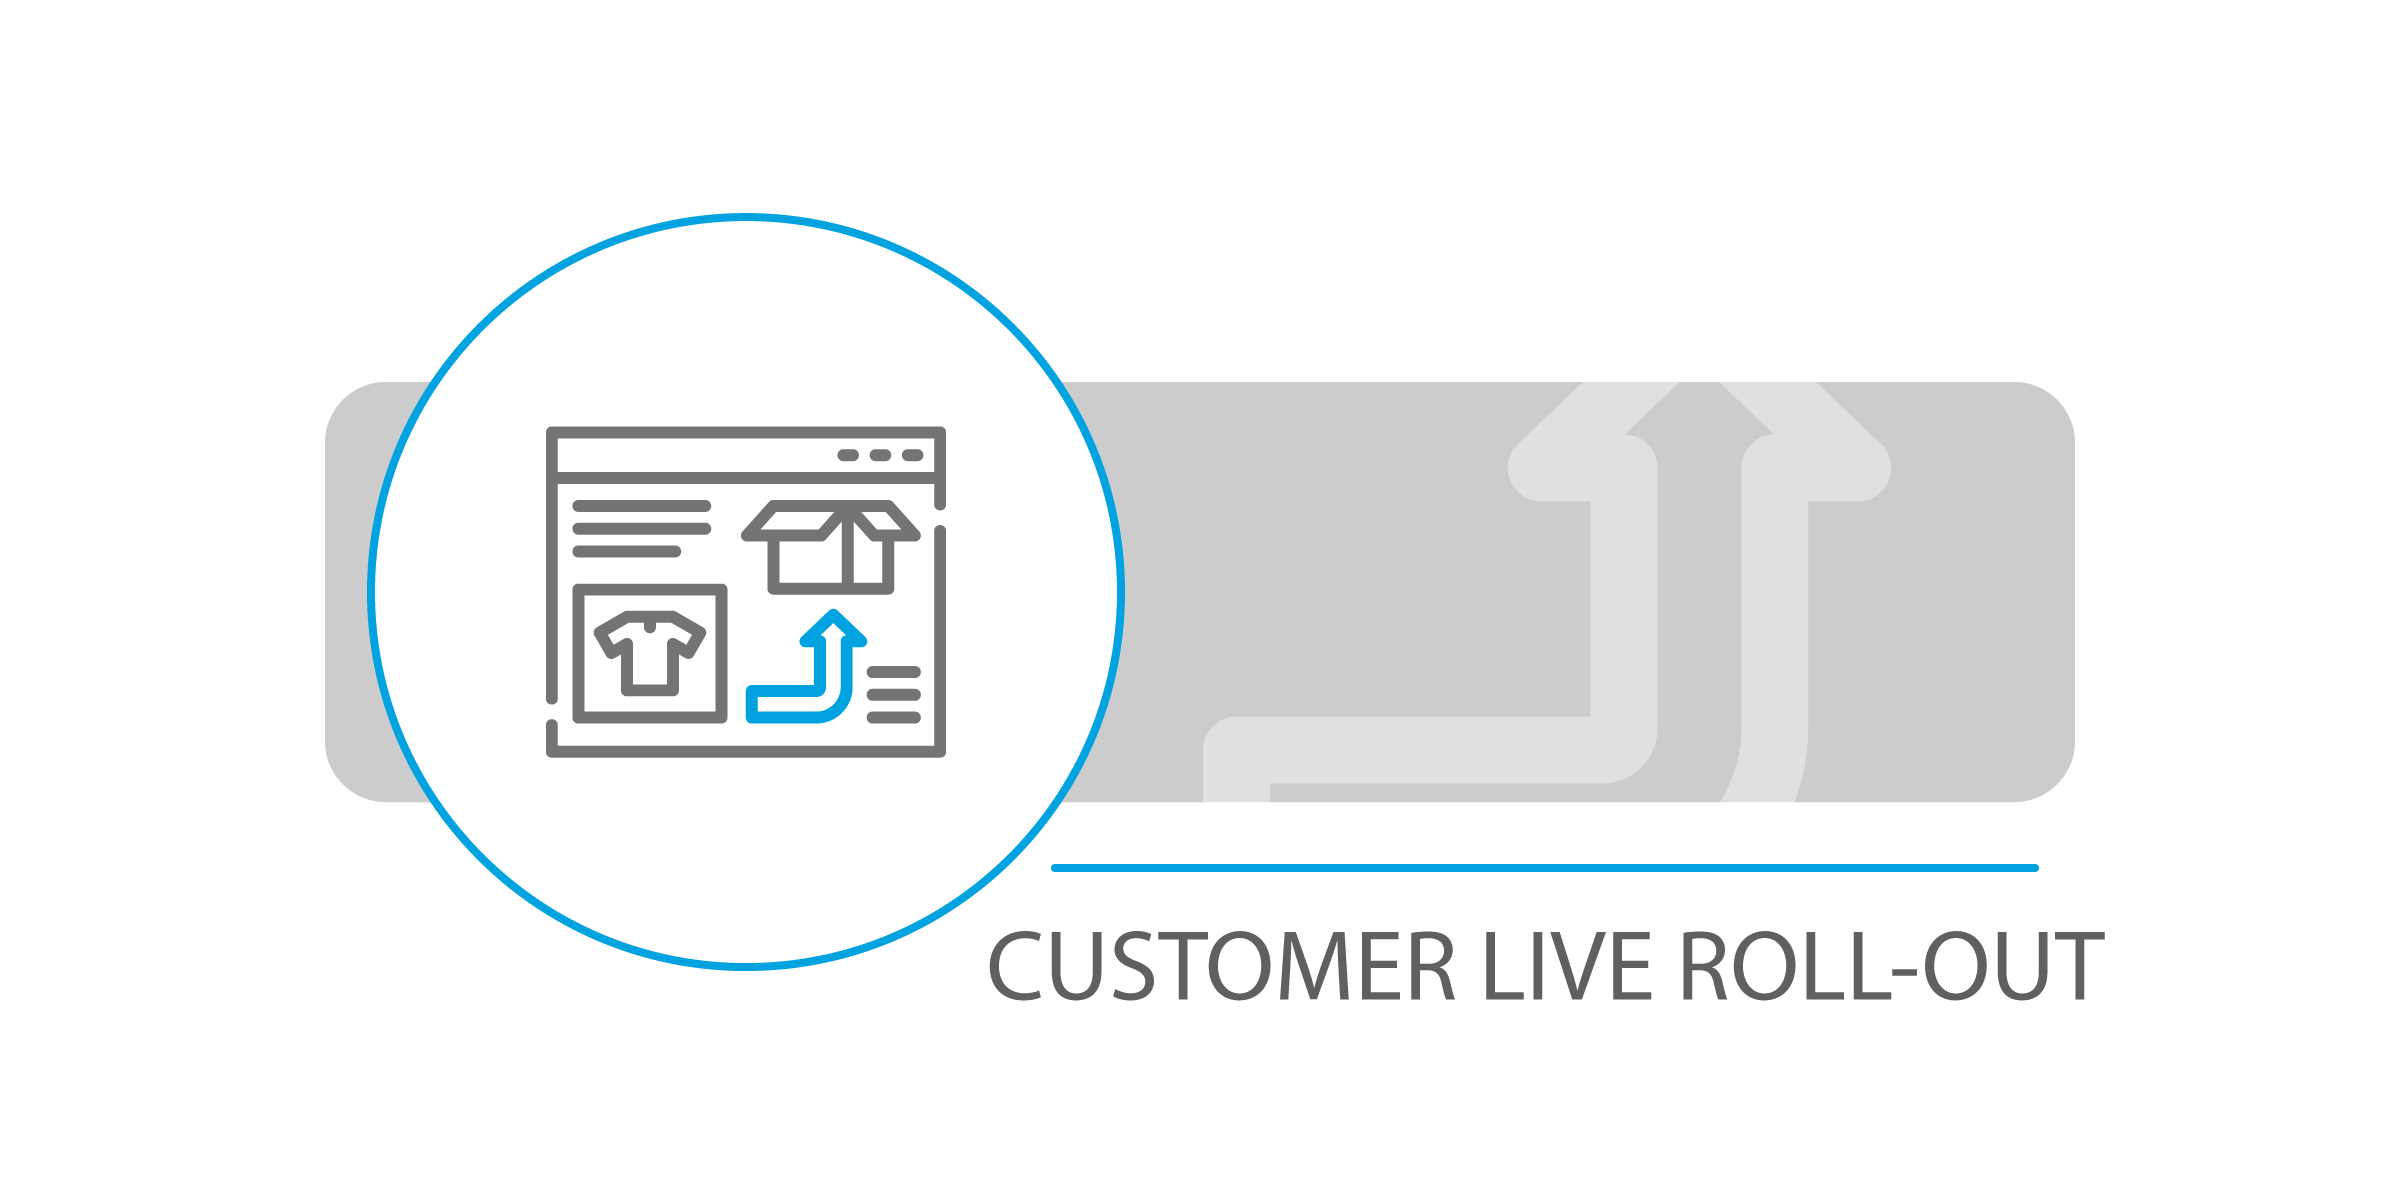 Customer Live Roll-Out image